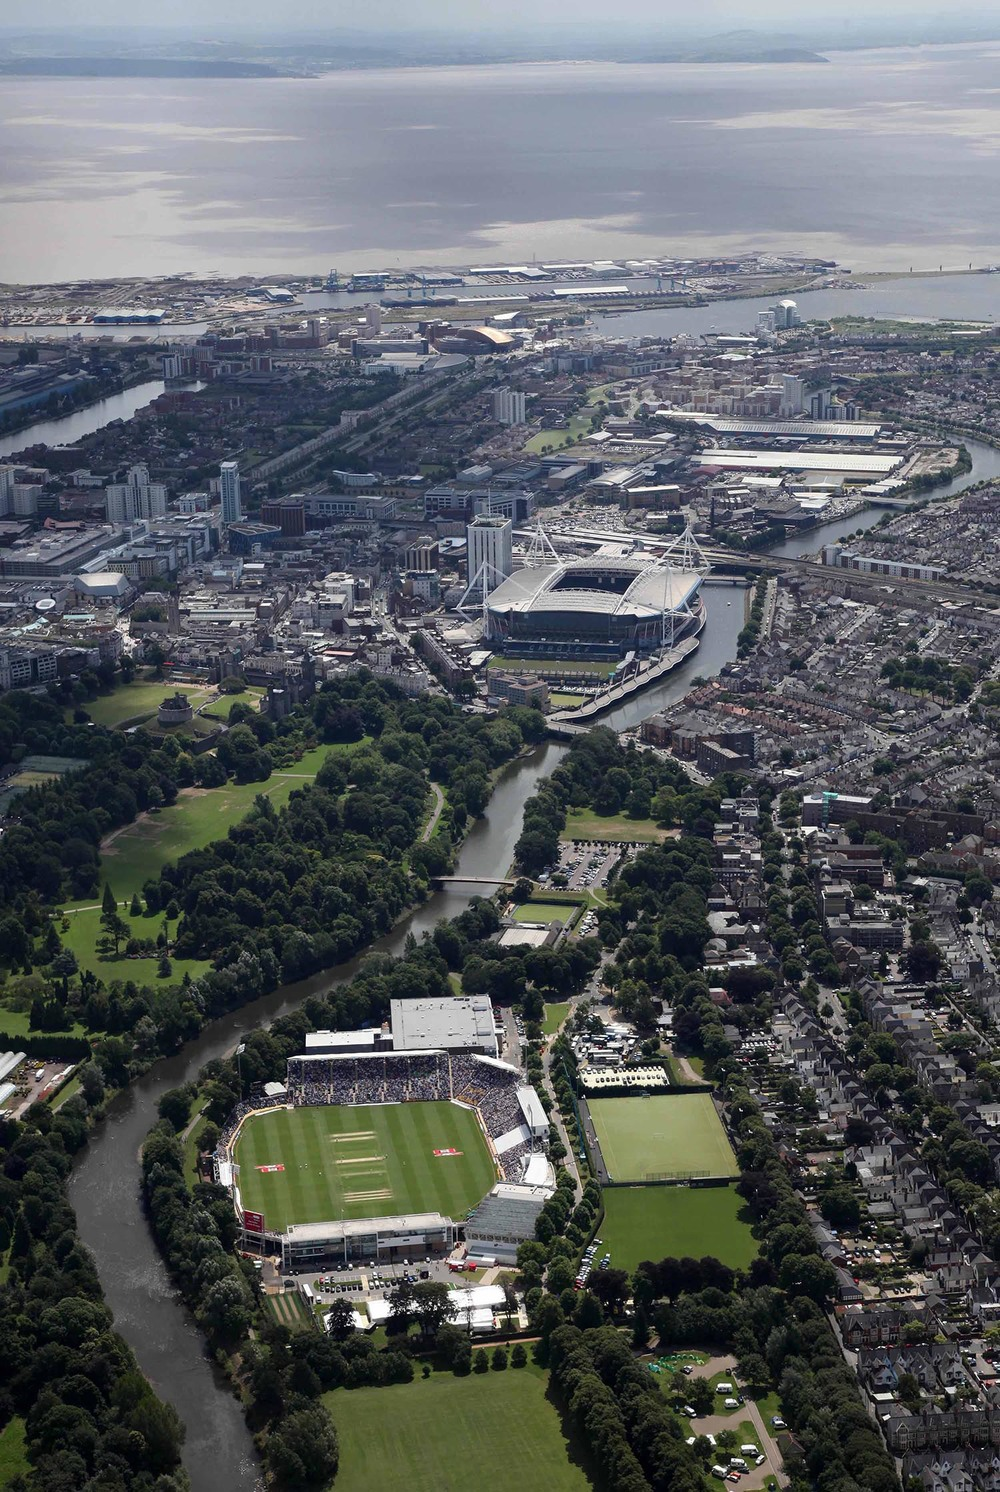 The SWALEC Stadium and Millennium Stadium